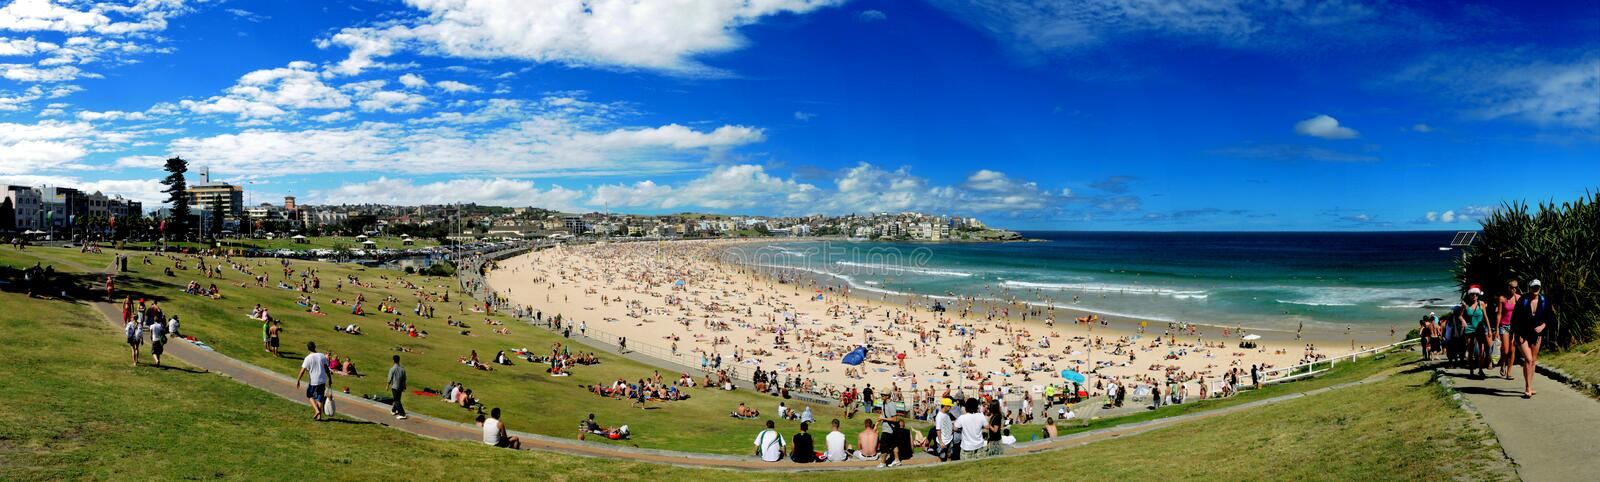 Bondi Beach Panorama stock photography